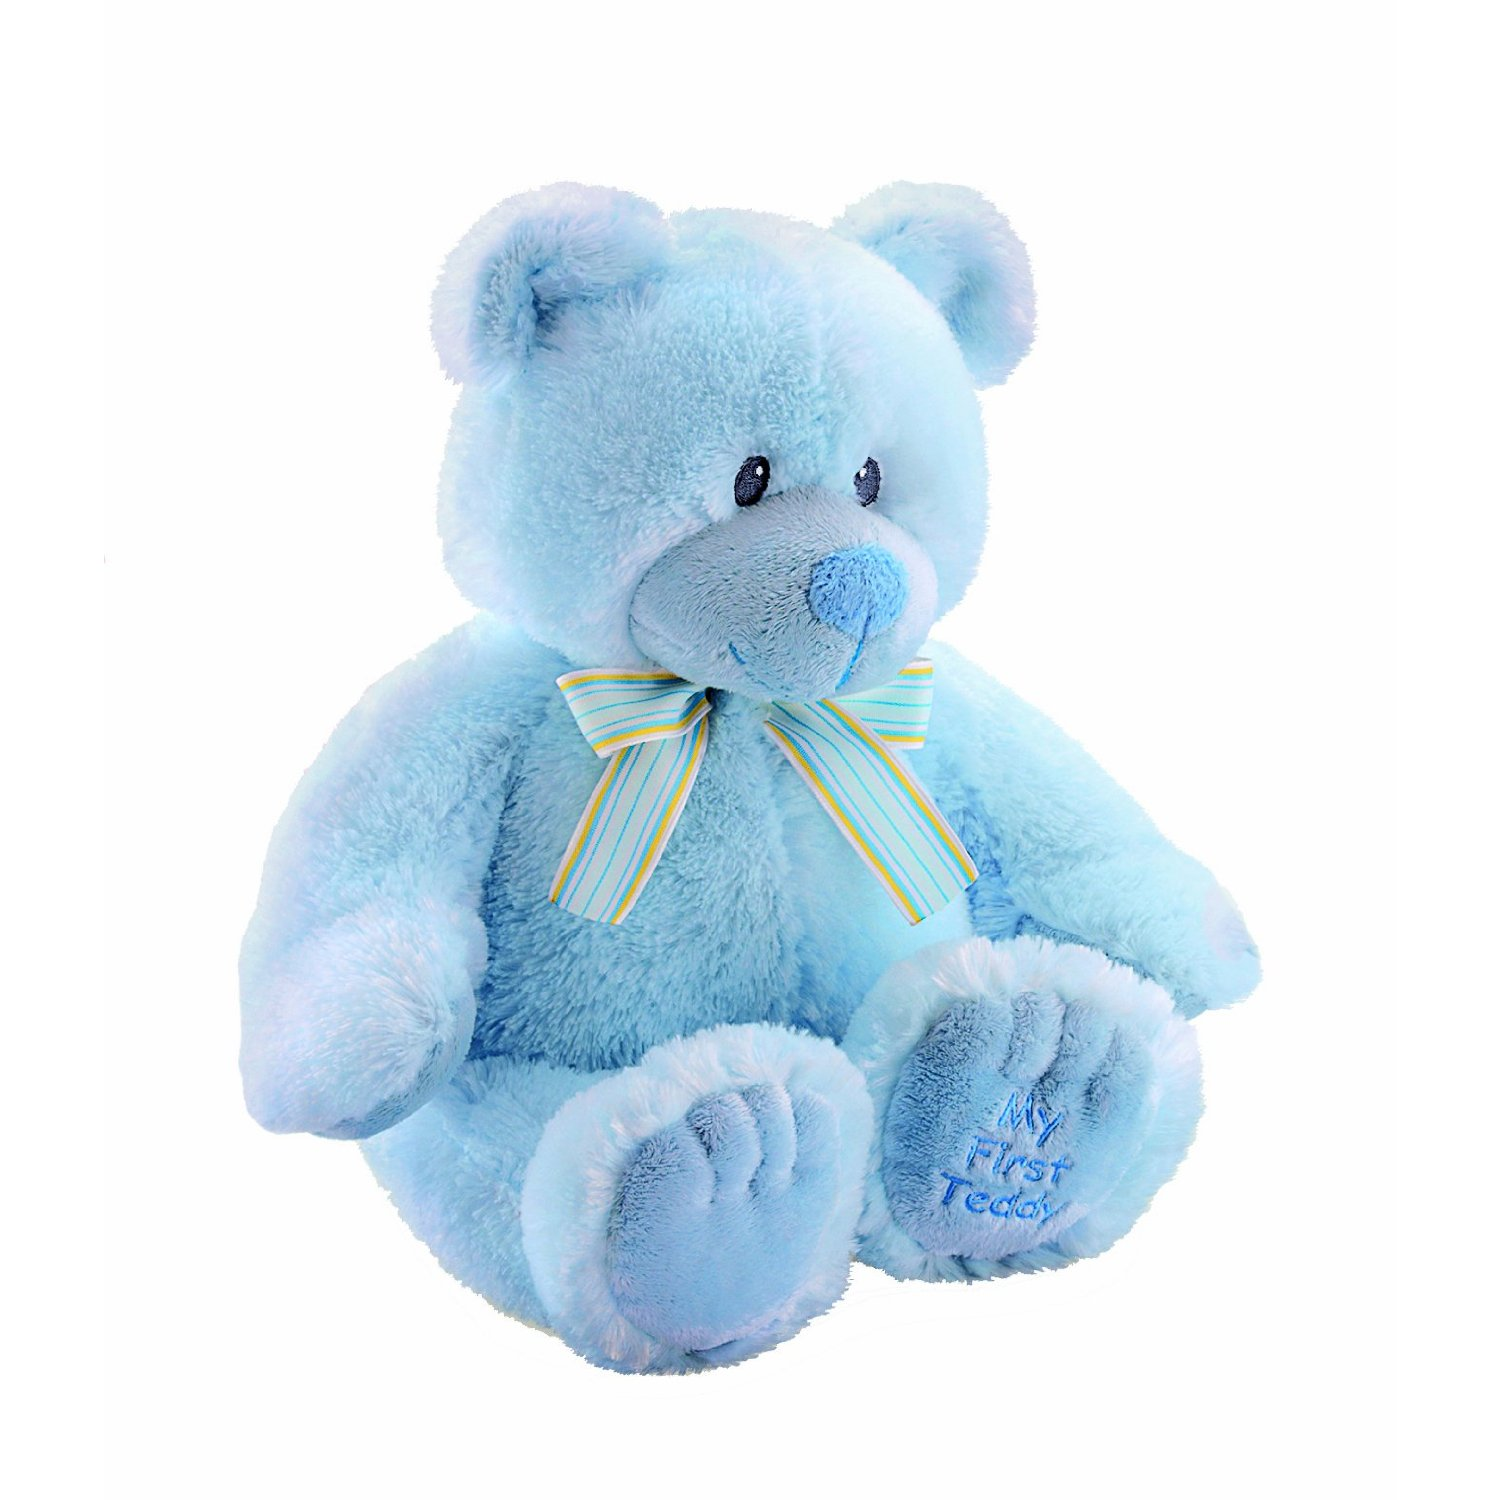 Download Blue Teddy Bear Wallpapers Gallery